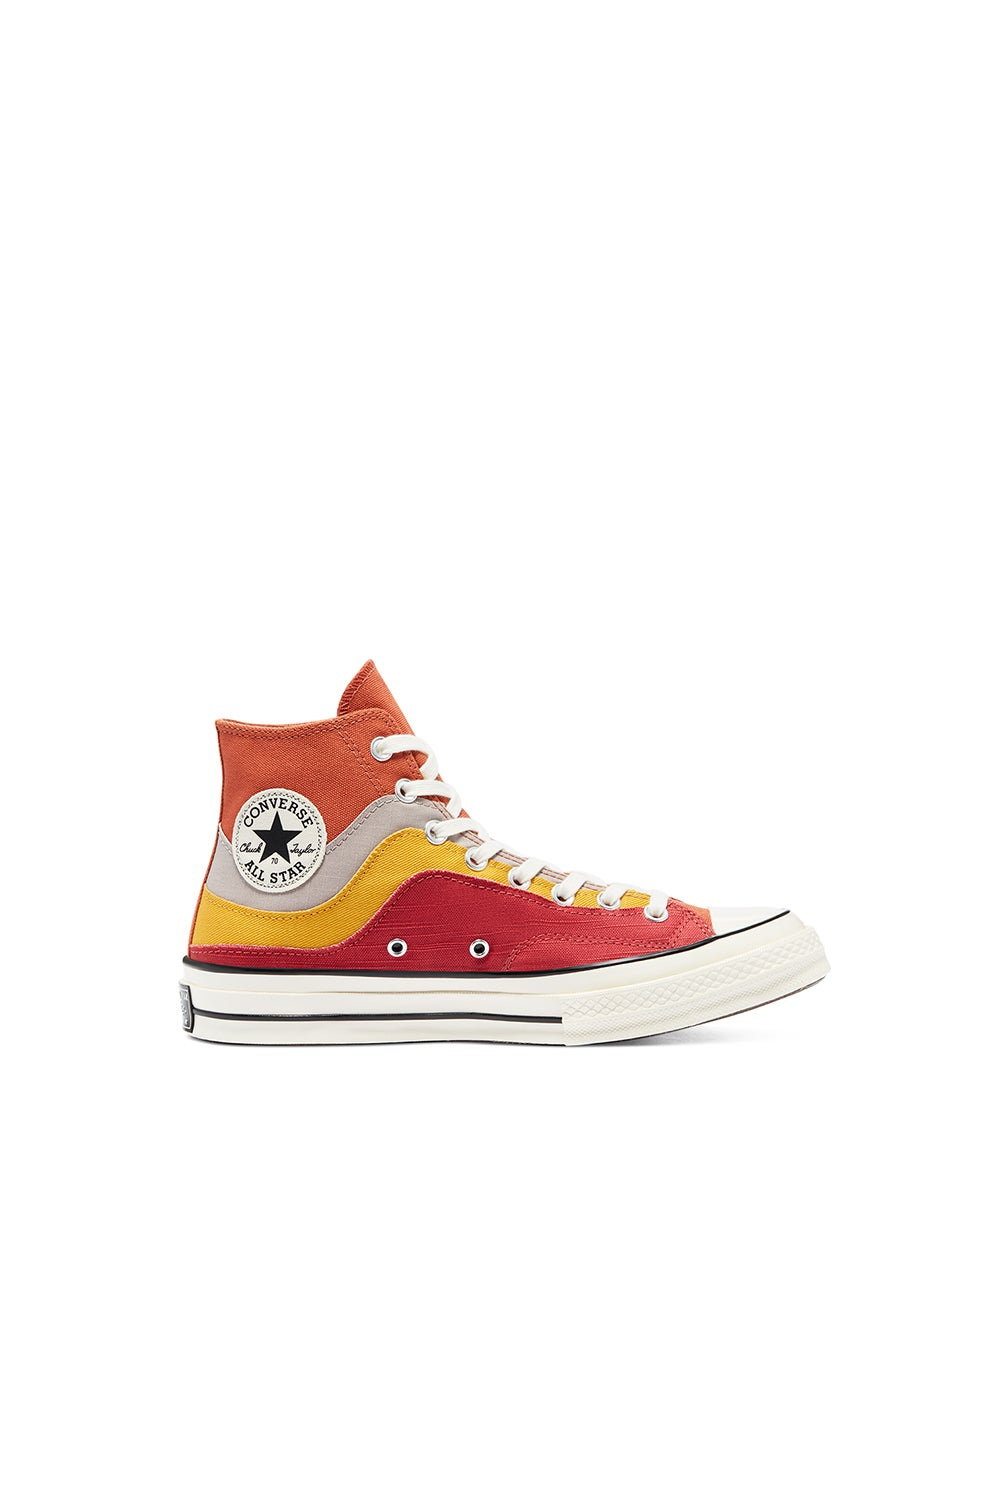 Converse Chuck Taylor All Star 70 National Parks High Top Red Bark